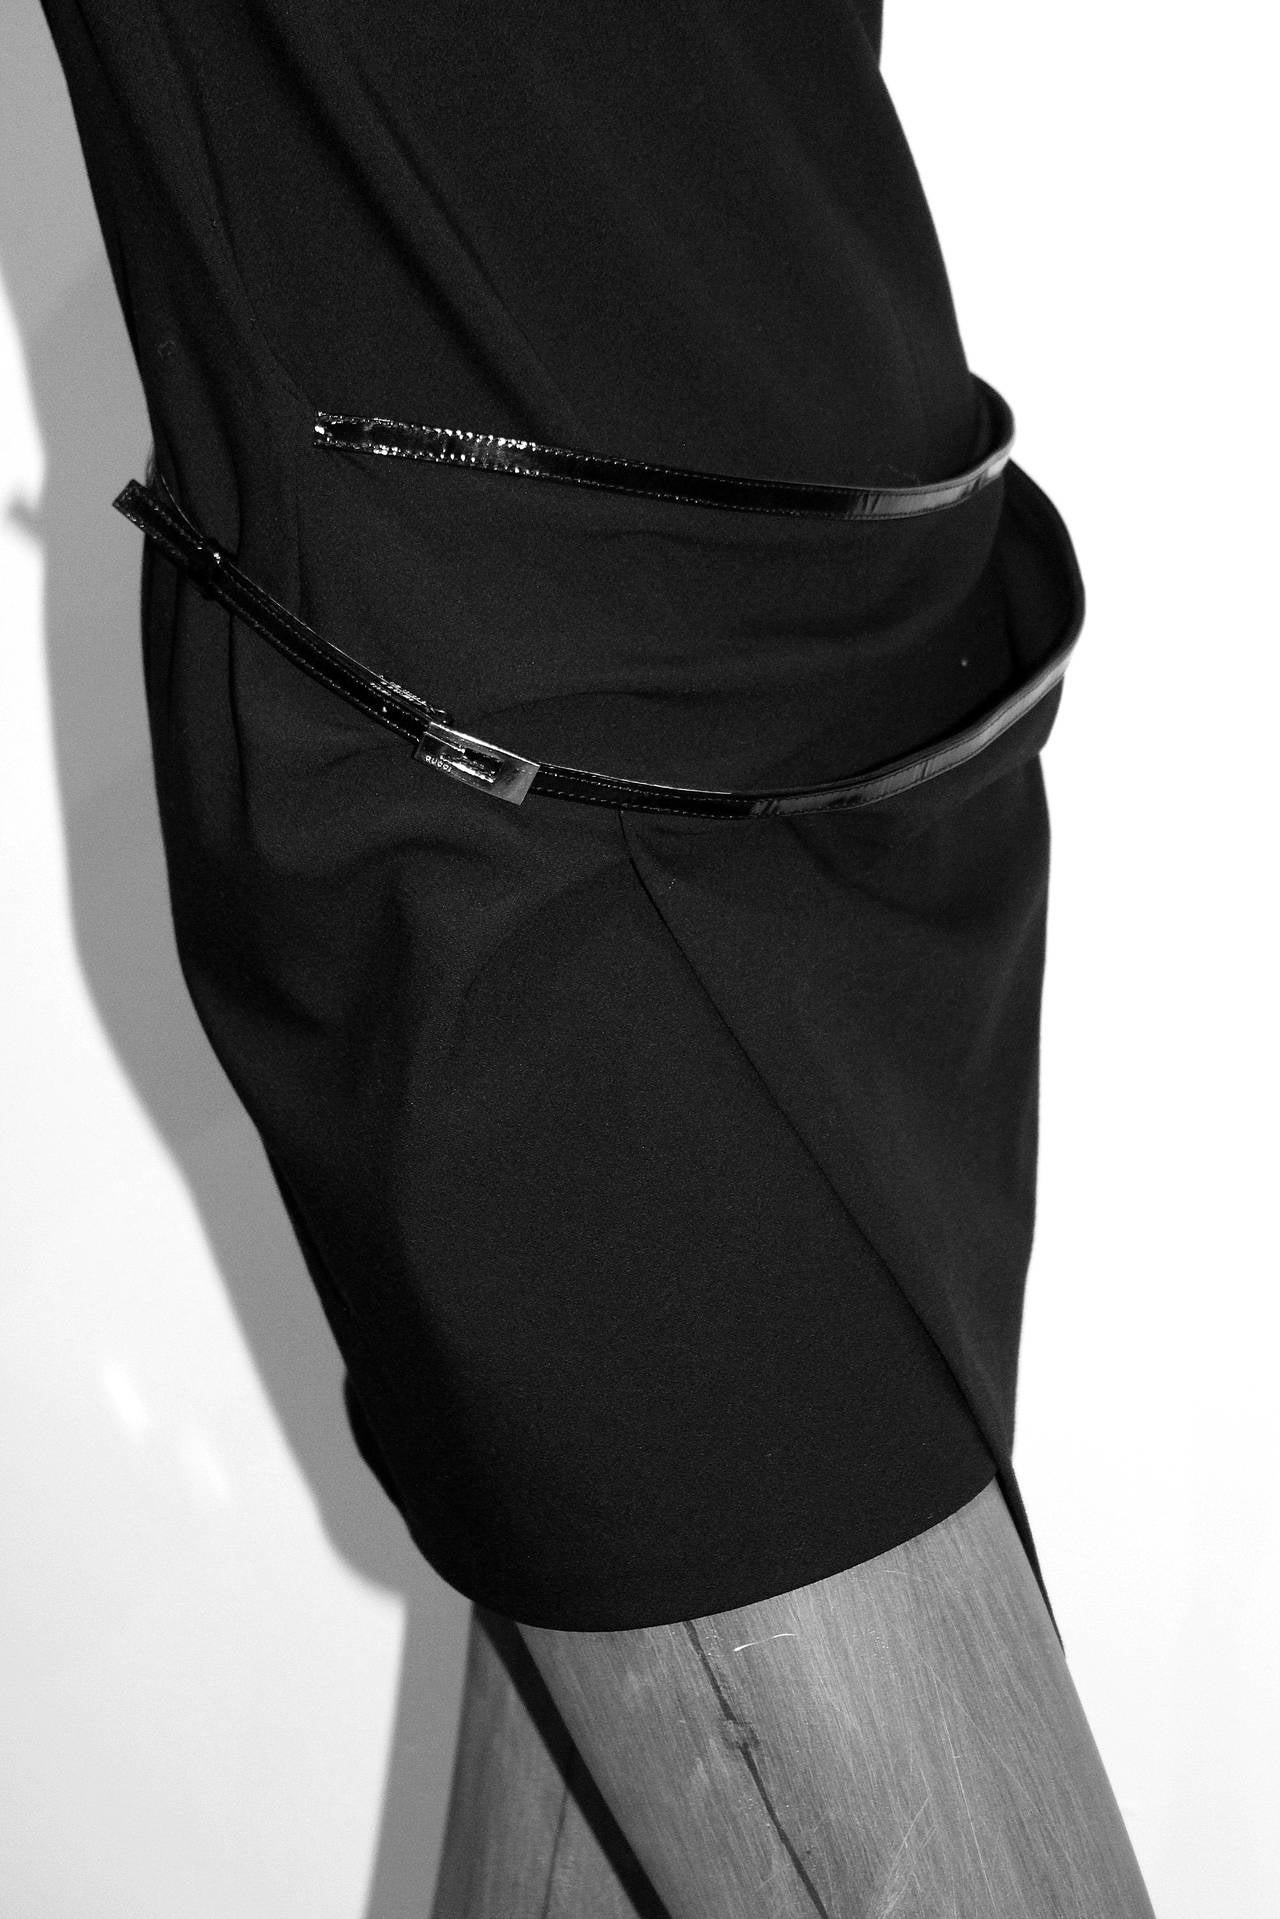 Women's Iconic 90s Tom Ford for Gucci Little Black Dress c. 1997